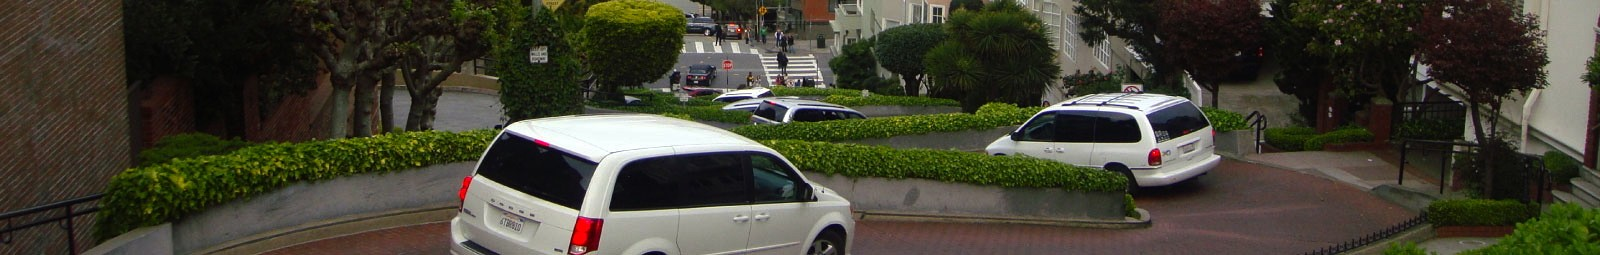 Lombard Street on your hostel tour of San Francisco.